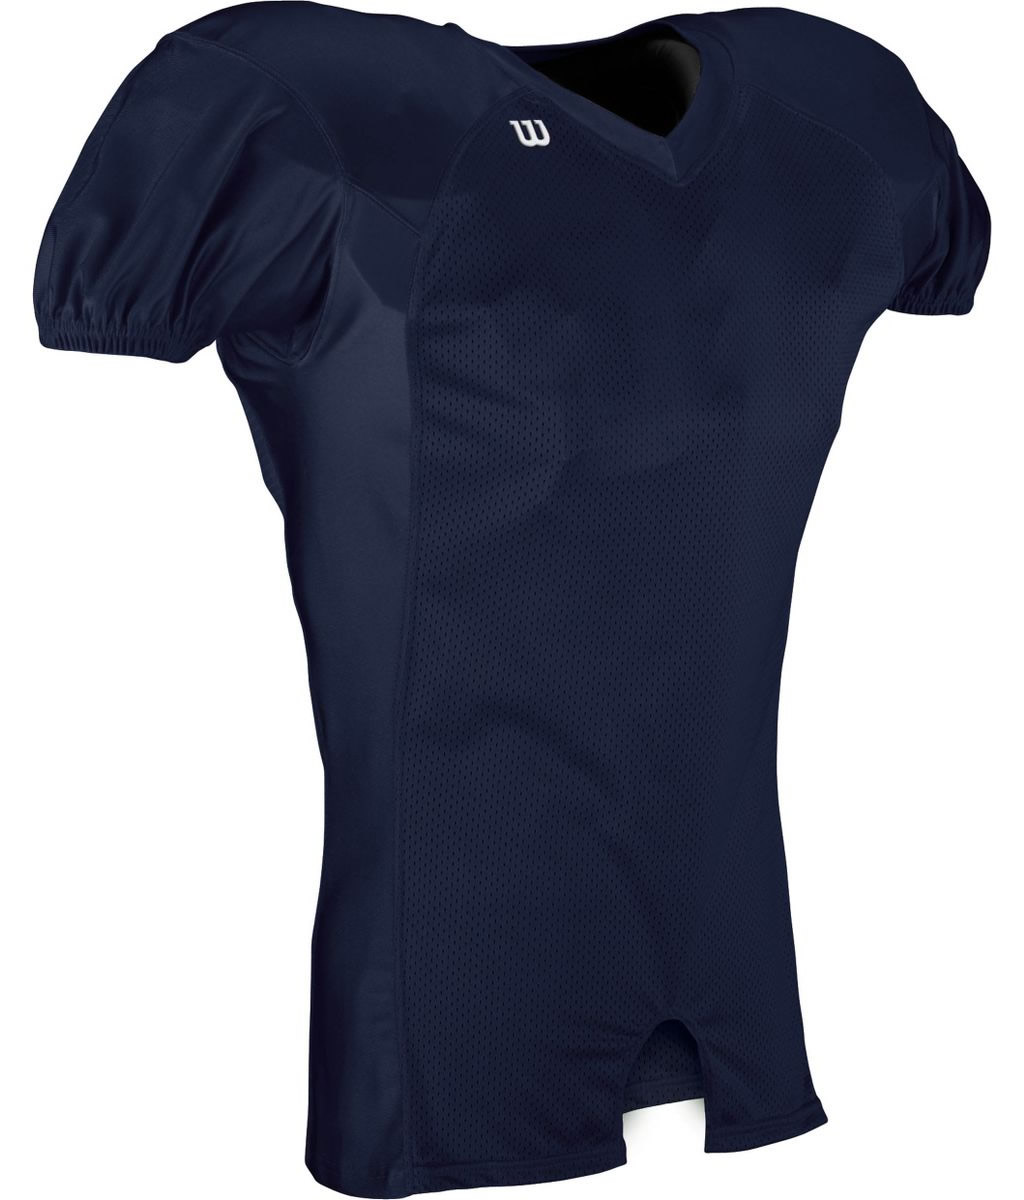 Wilson Fit Football Jersey, Navy